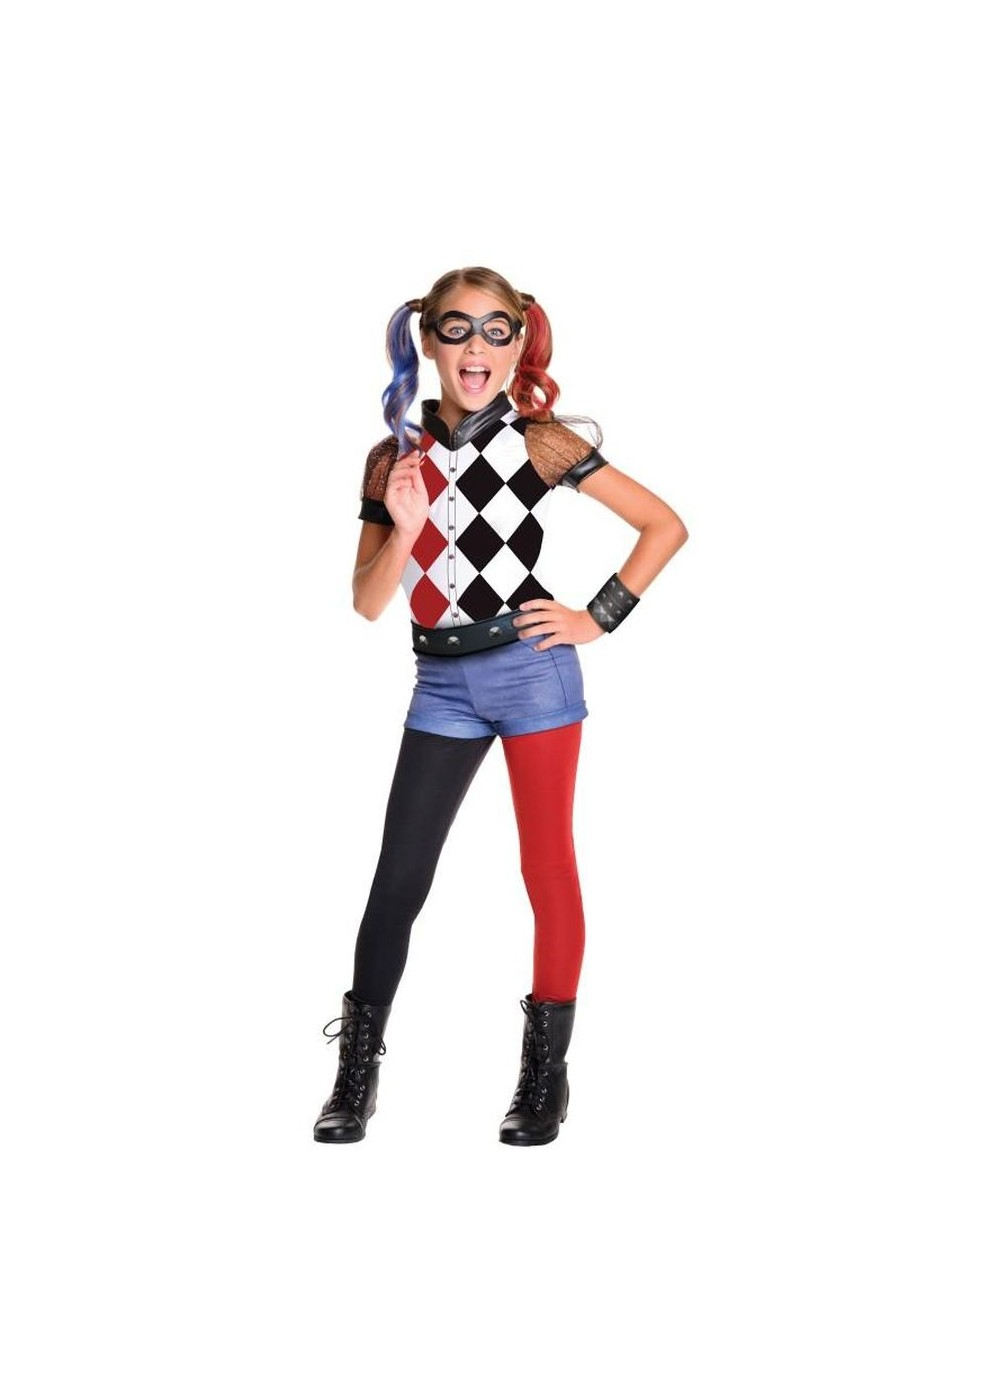 Toddler Child Hat Size Harley Quinn Girls Costume Movie Costumes